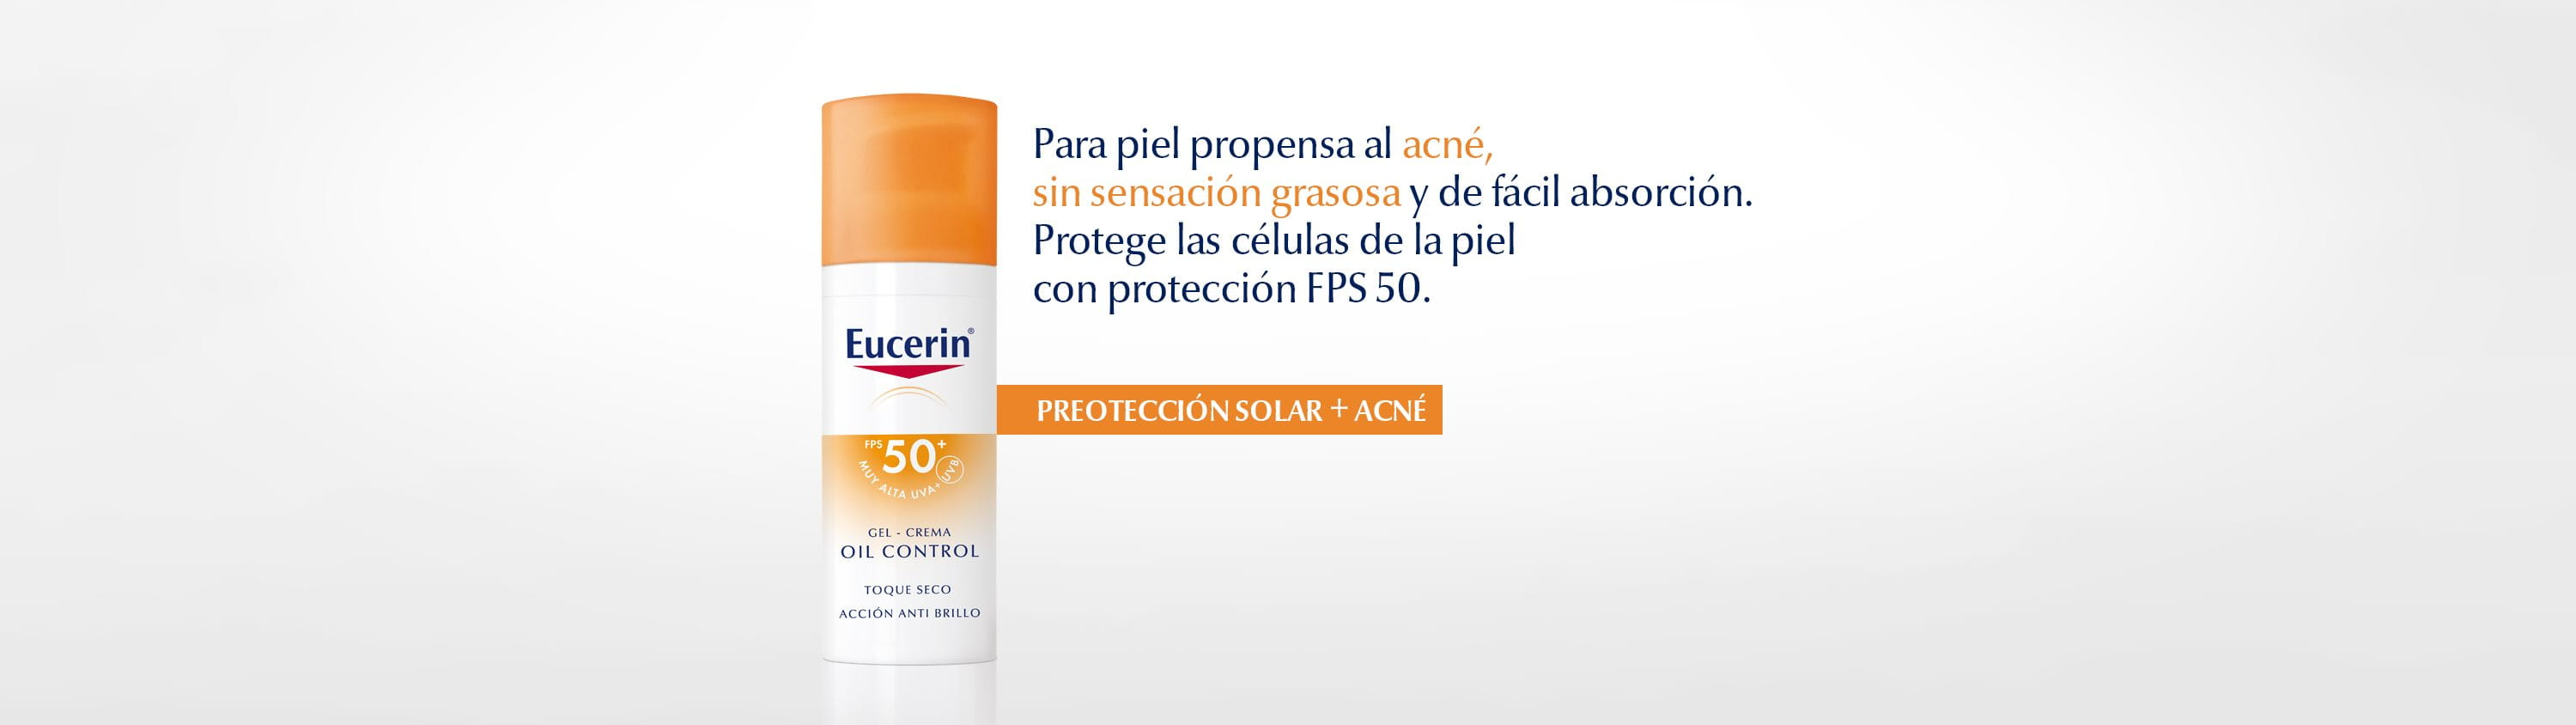 Eucerin Sun Protection Oil Control FPS 50, efecto anti-brillos